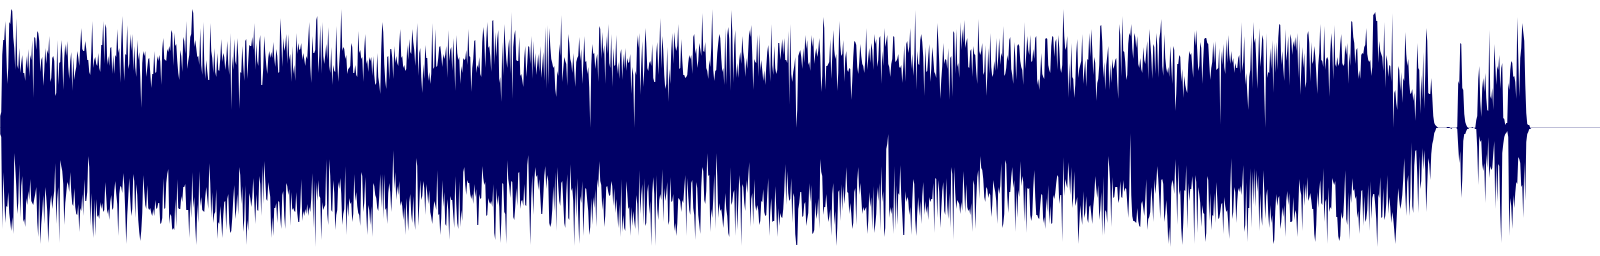 waveform of track #143670